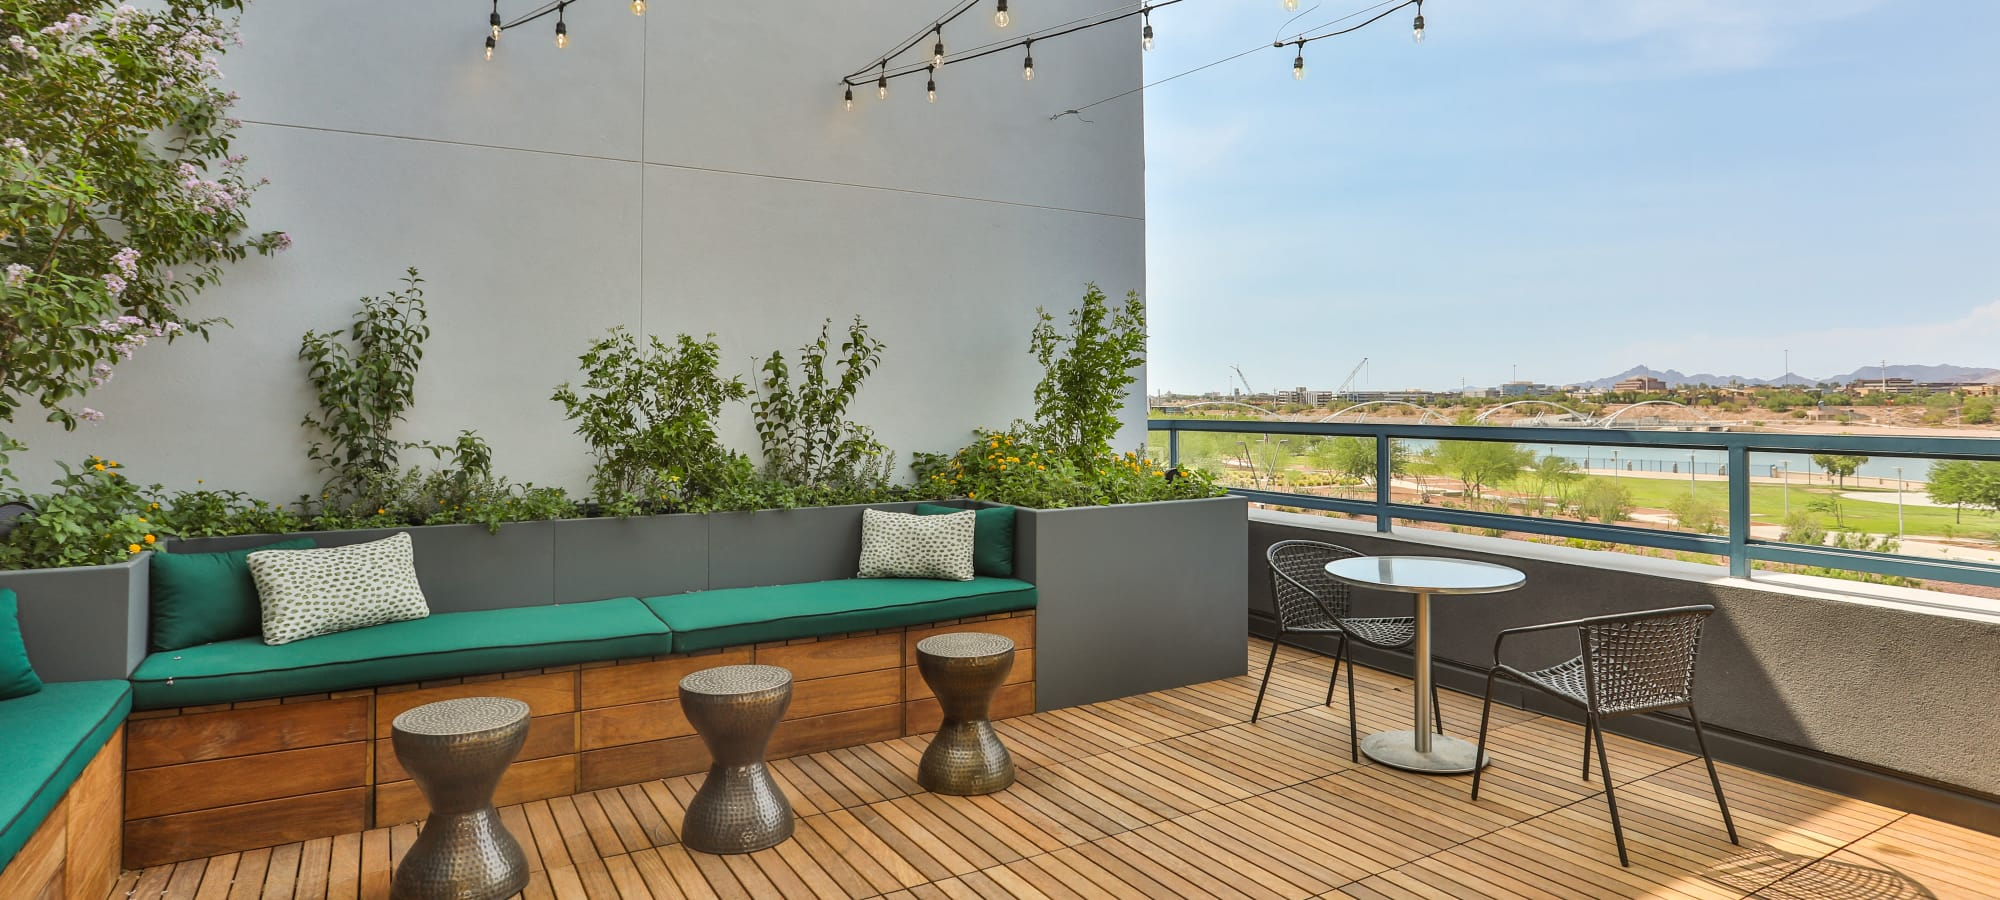 Rooftop porch with comfortable seating at Lakeside Drive Apartments in Tempe, Arizona